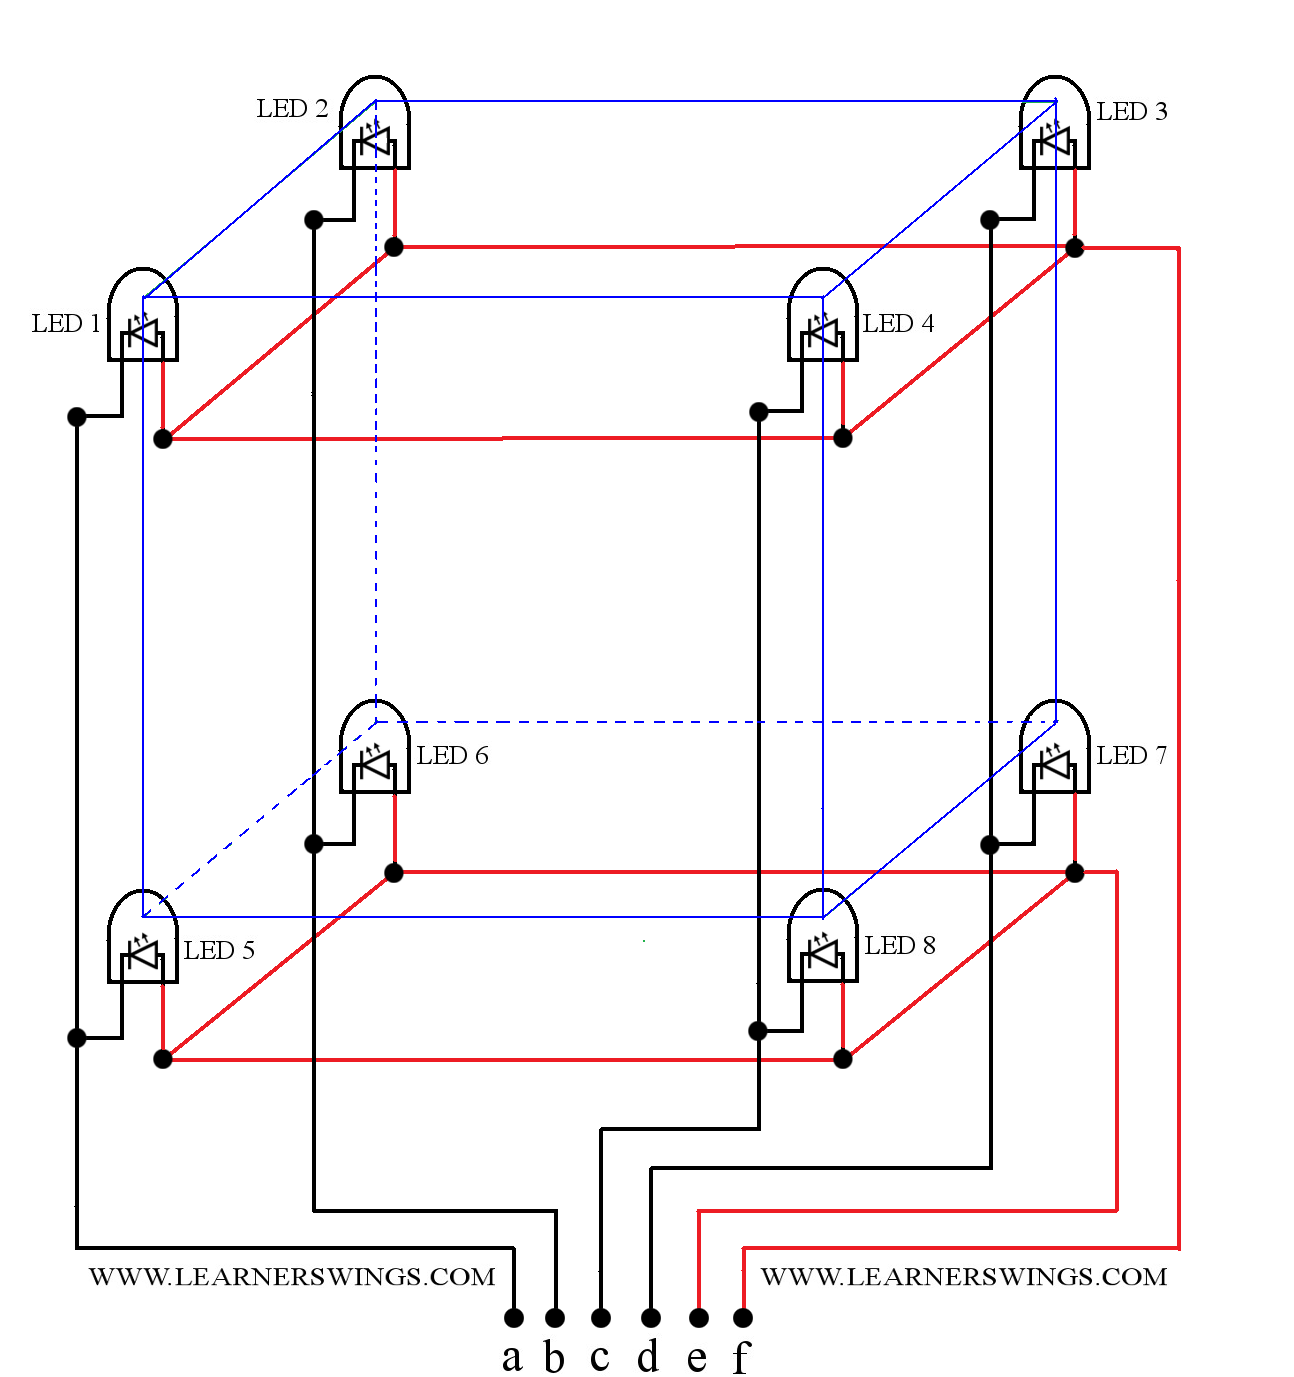 Circuit Diagram of a 222 LED Cube Part 1 of 13 Funny Electronics